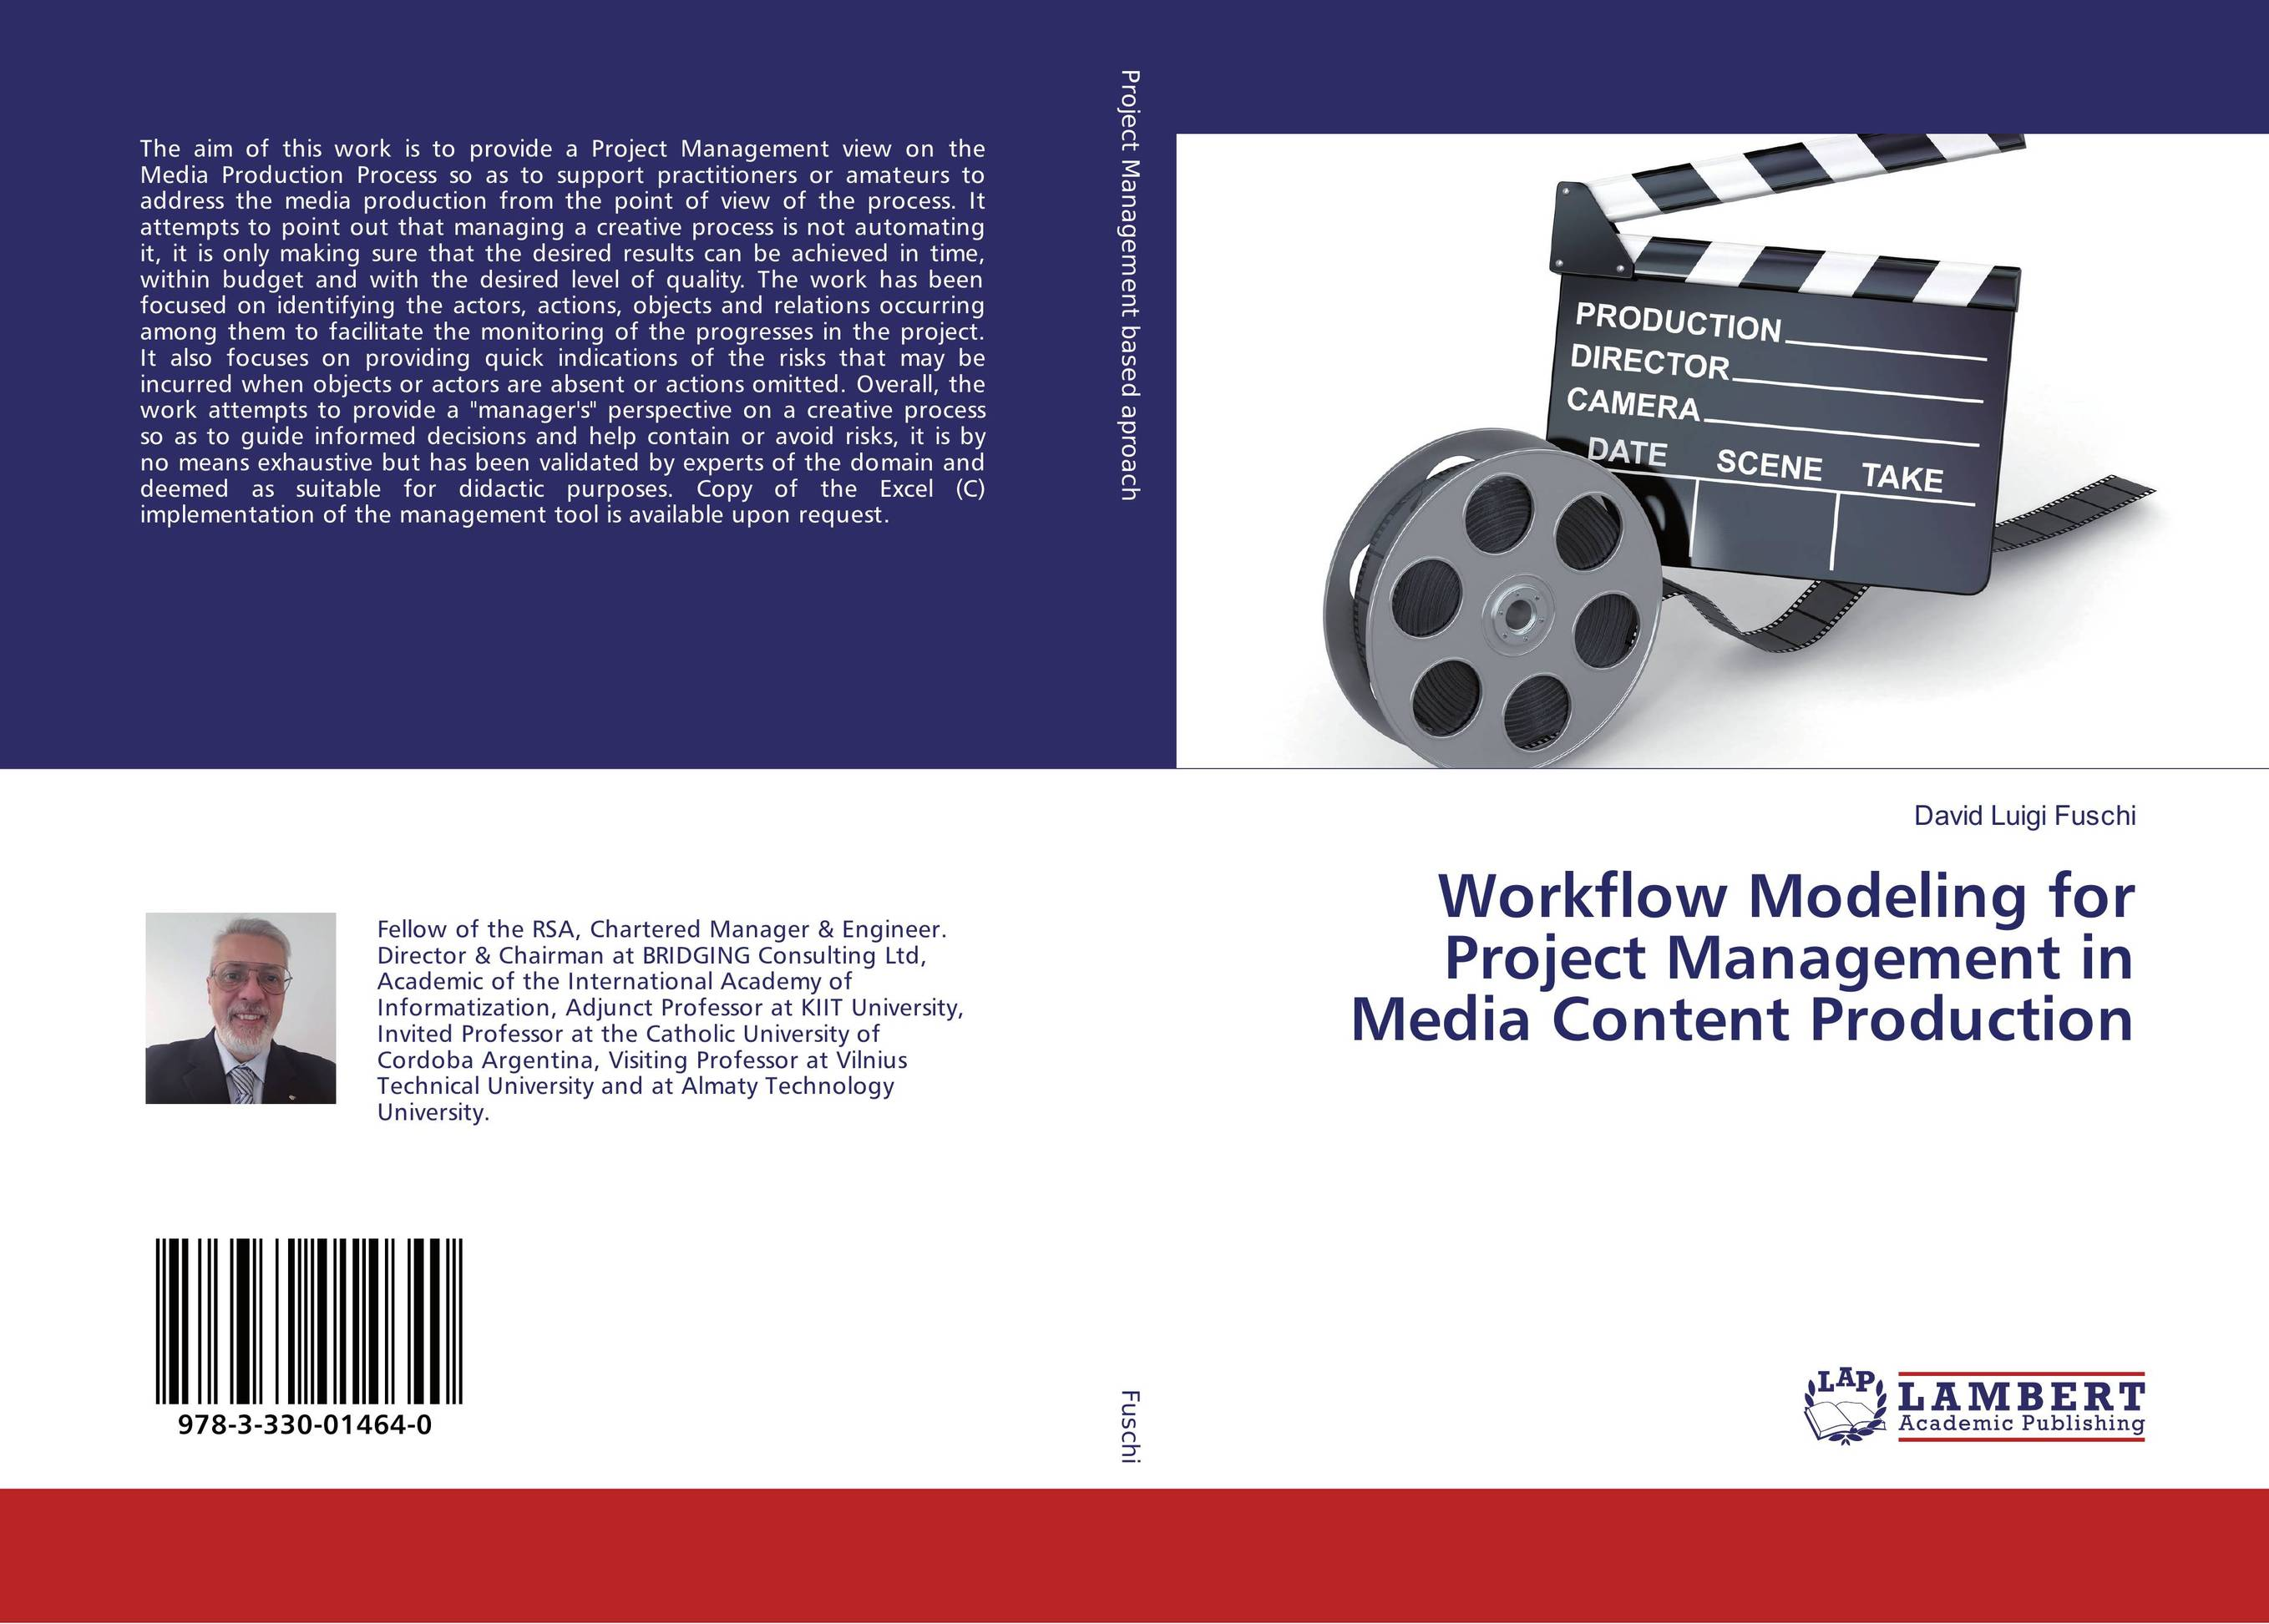 9783330014640 Workflow Modeling for Project Management in Media nt Production